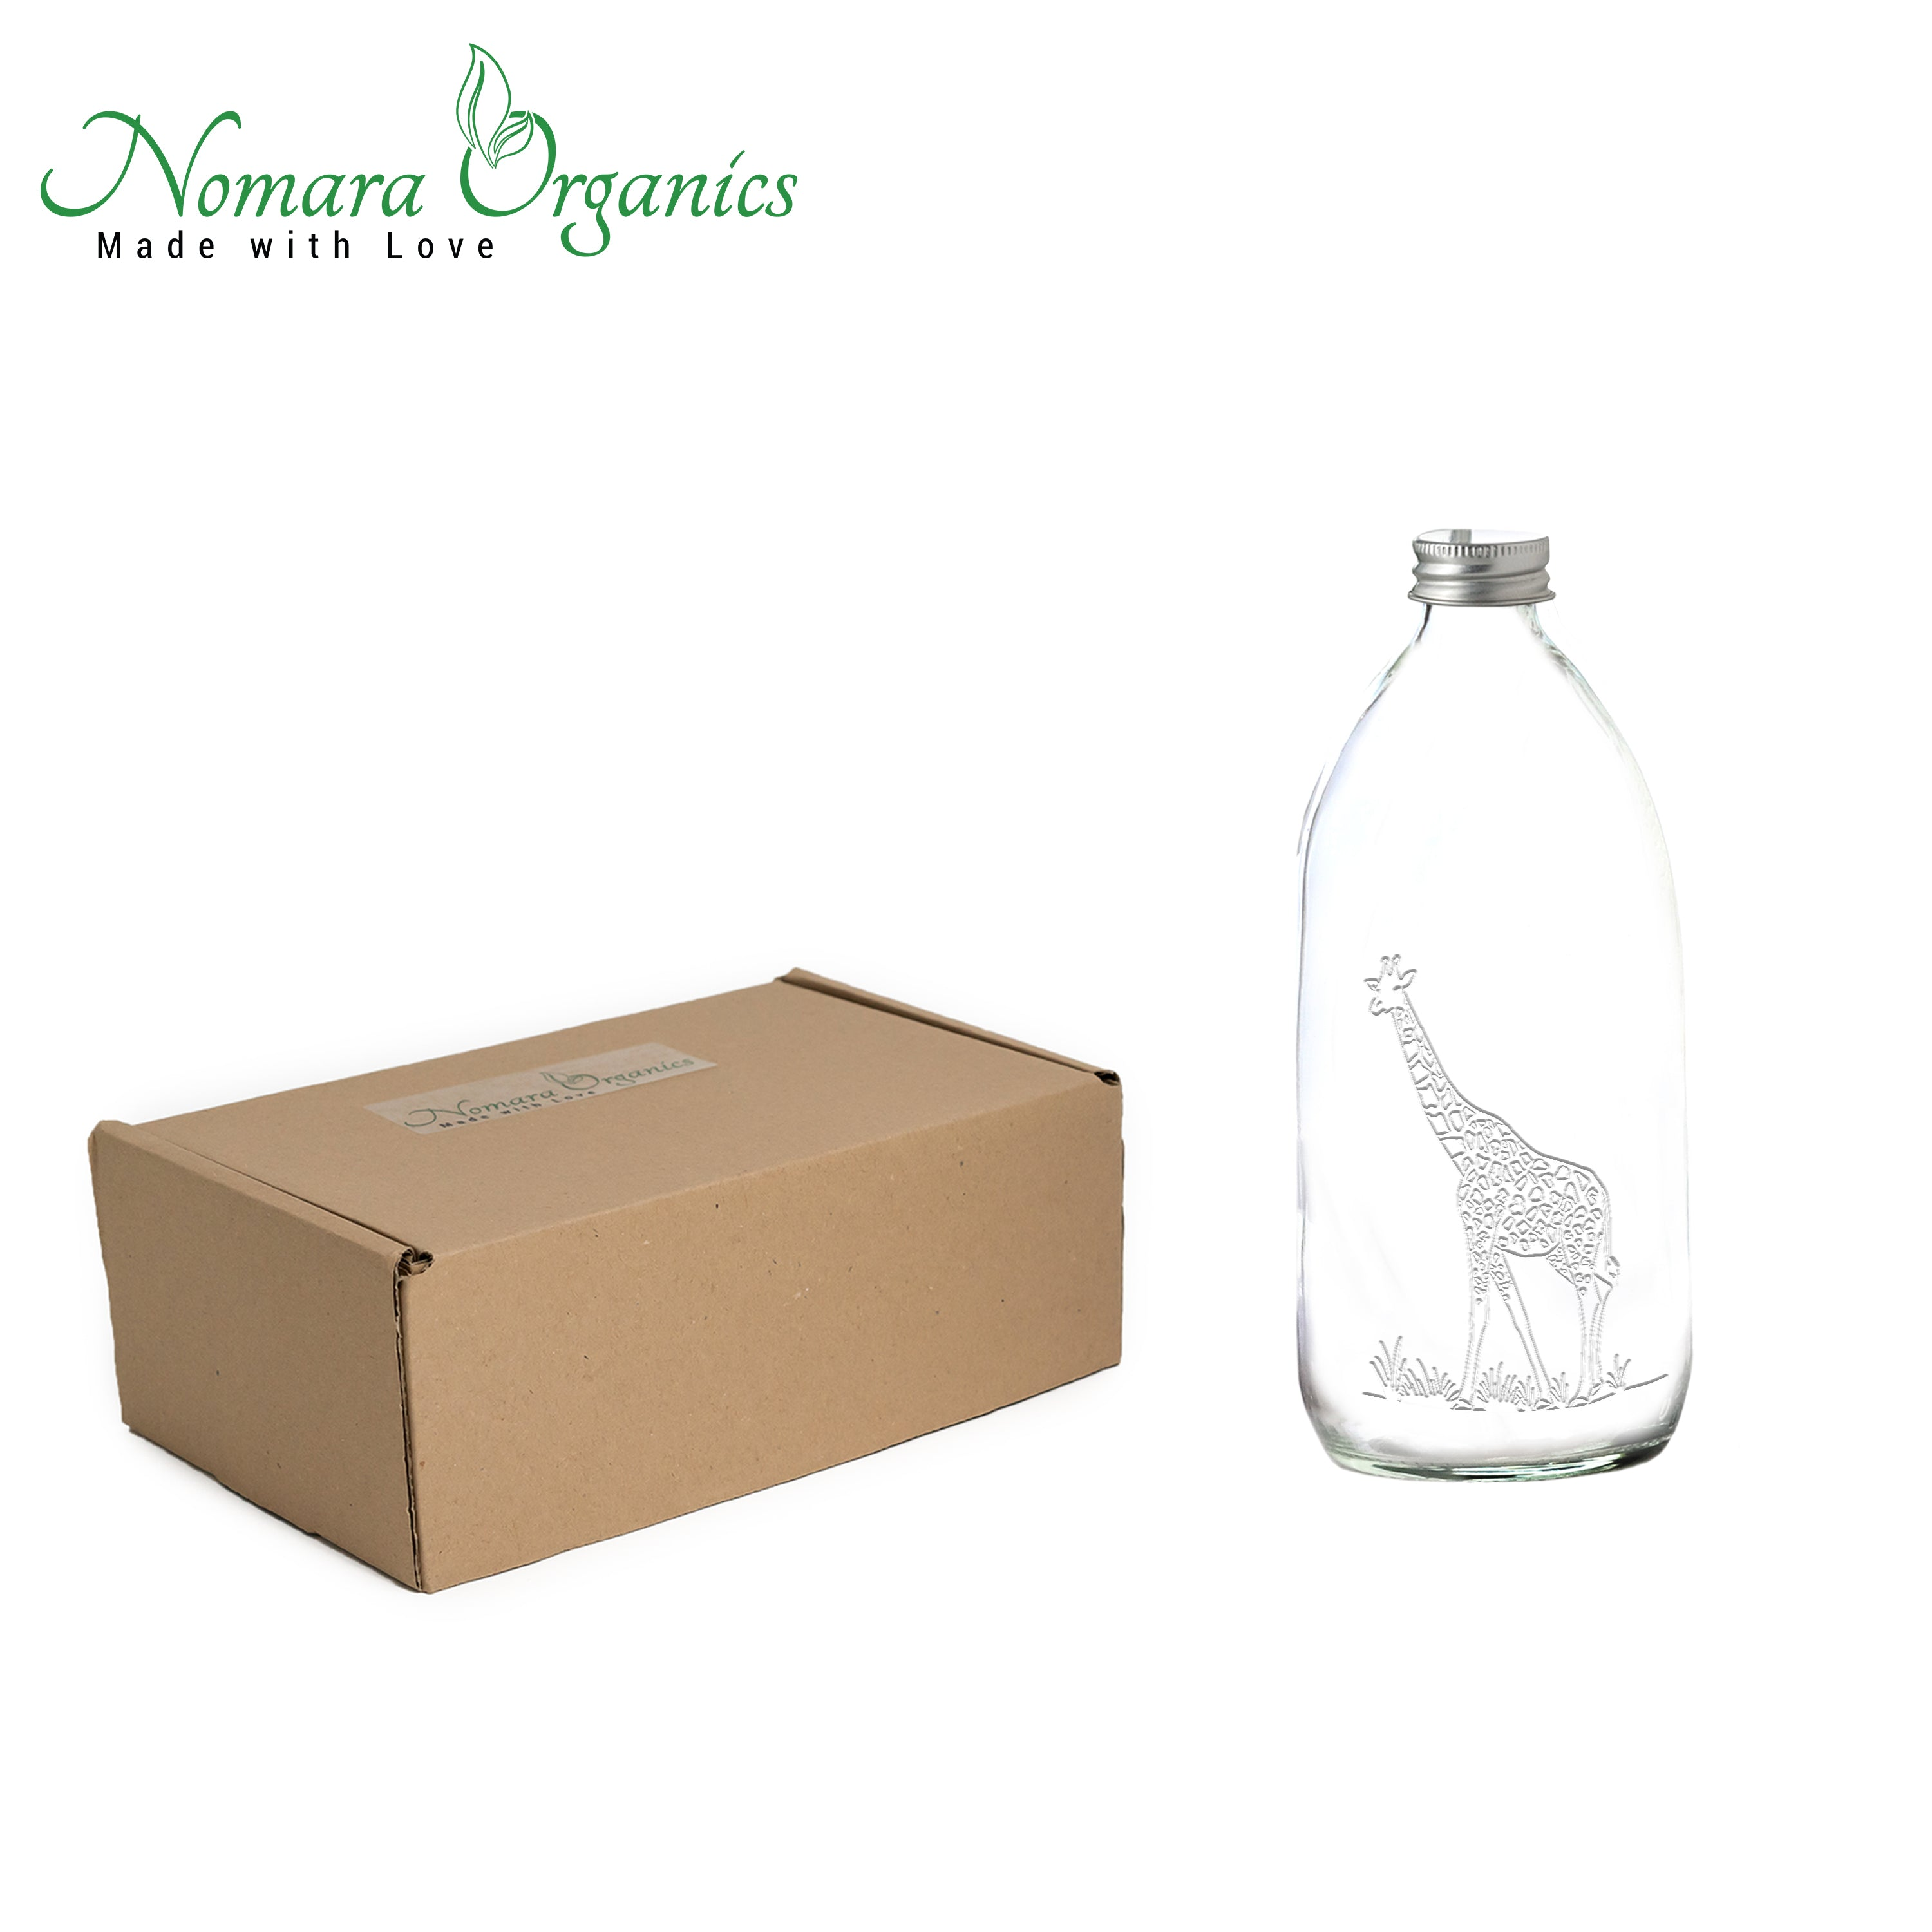 1pc Giraffe Laser Engraved Glass Spray Bottle 500ml by Nomara Organics®. Nestled on straw, BPA-free pump. Re-usable, ideal for a Gift, Bathroom, Kitchen, Flower vase, Ornament, Hair care, Room sprays, Essential oil blends, Cleaning